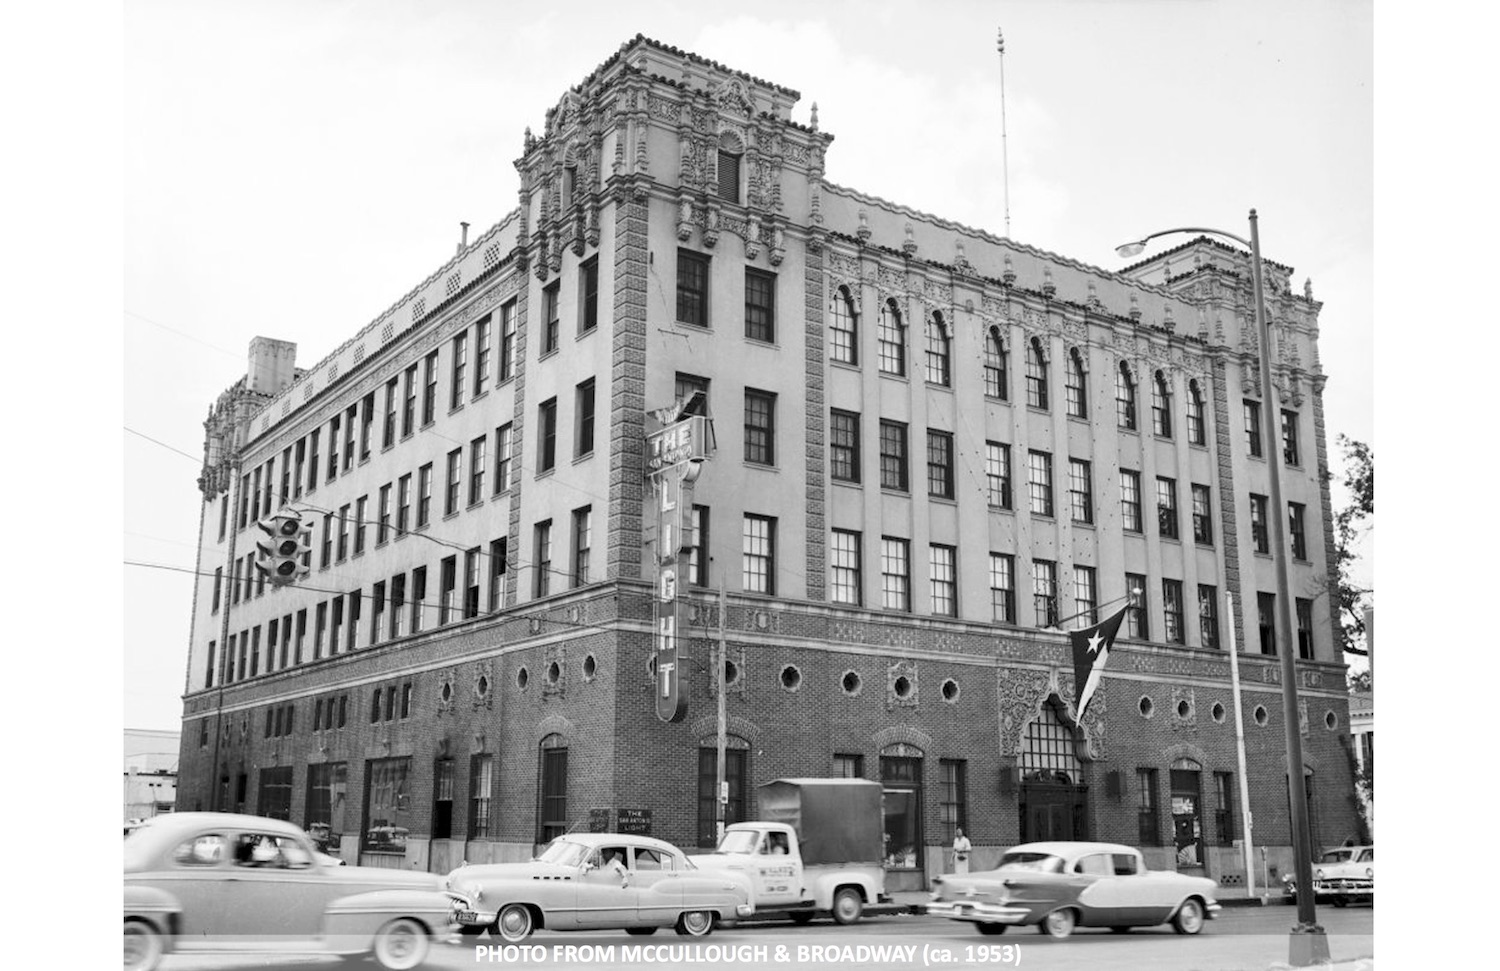 This historic photo of the Light building was taken around 1953.